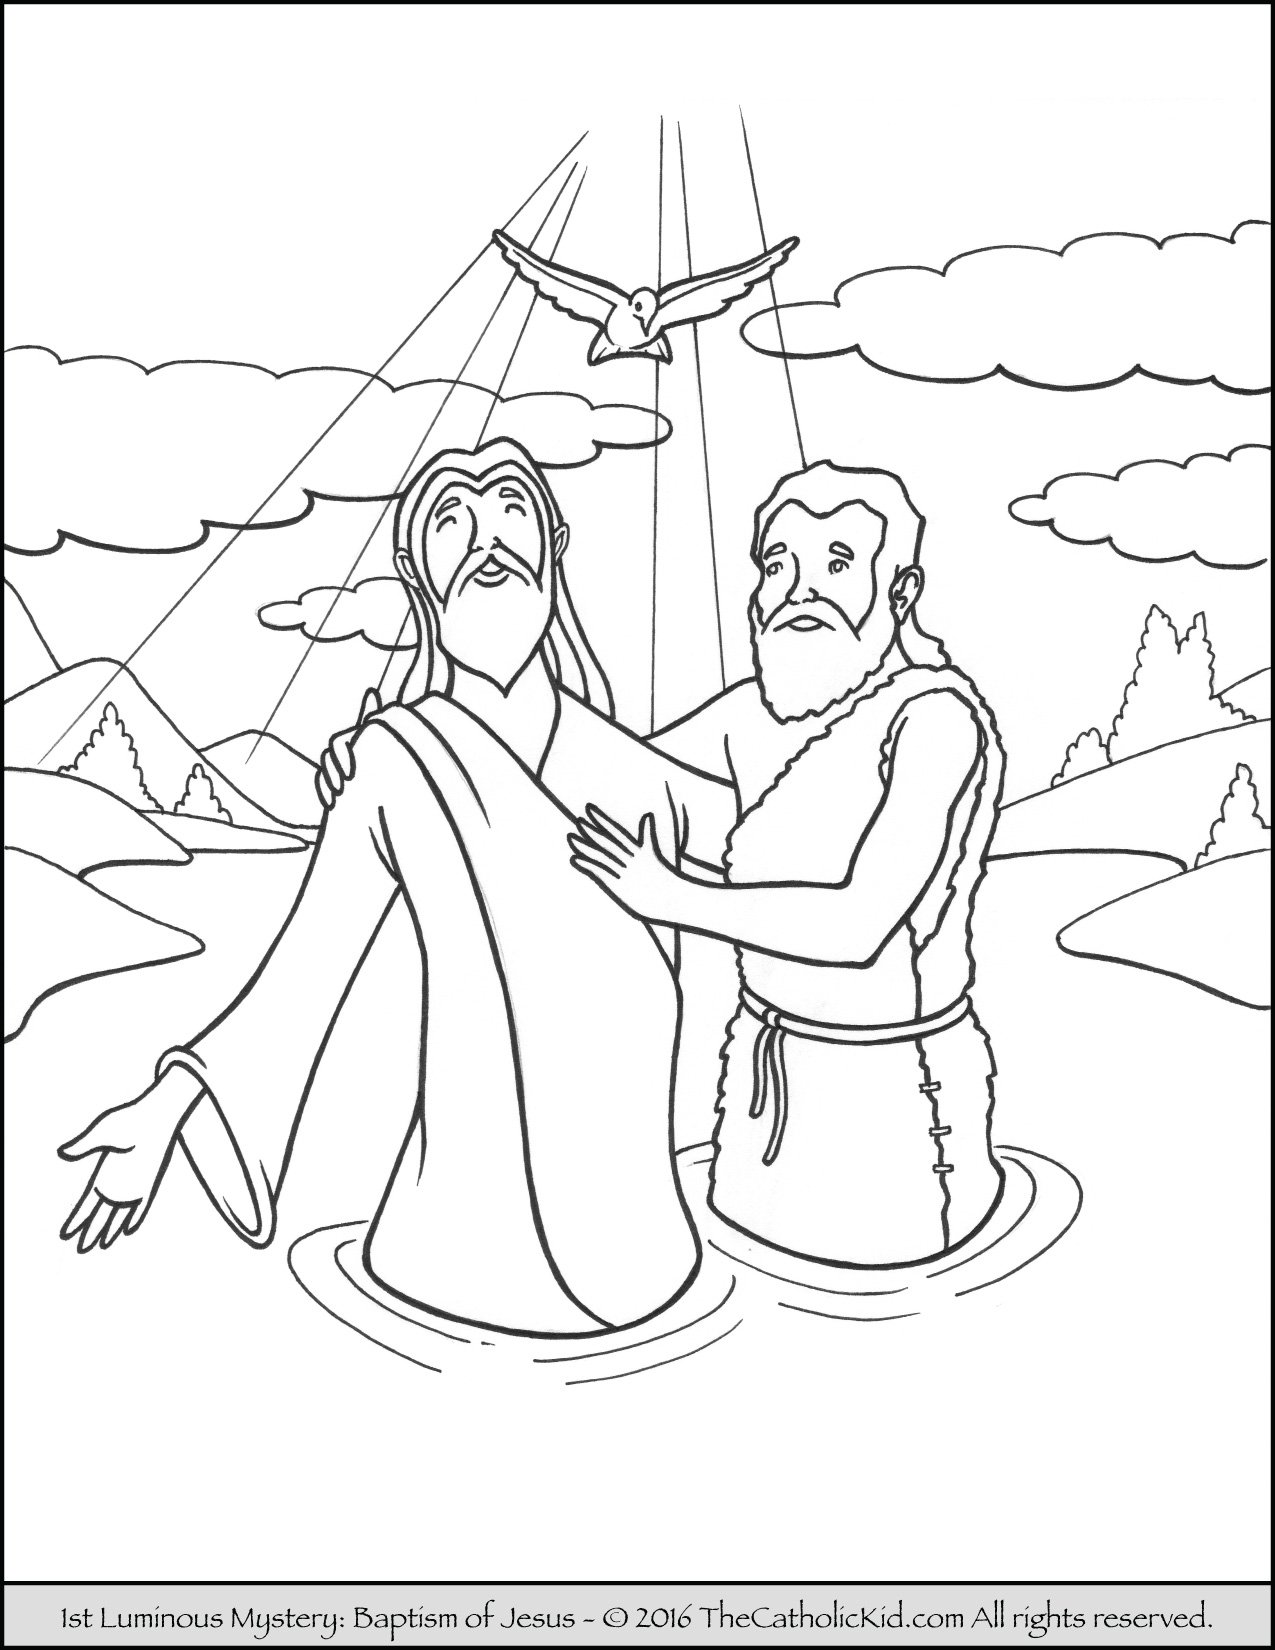 Luminous Mysteries Rosary Coloring Pages - Baptism of Jesus in the Jordan